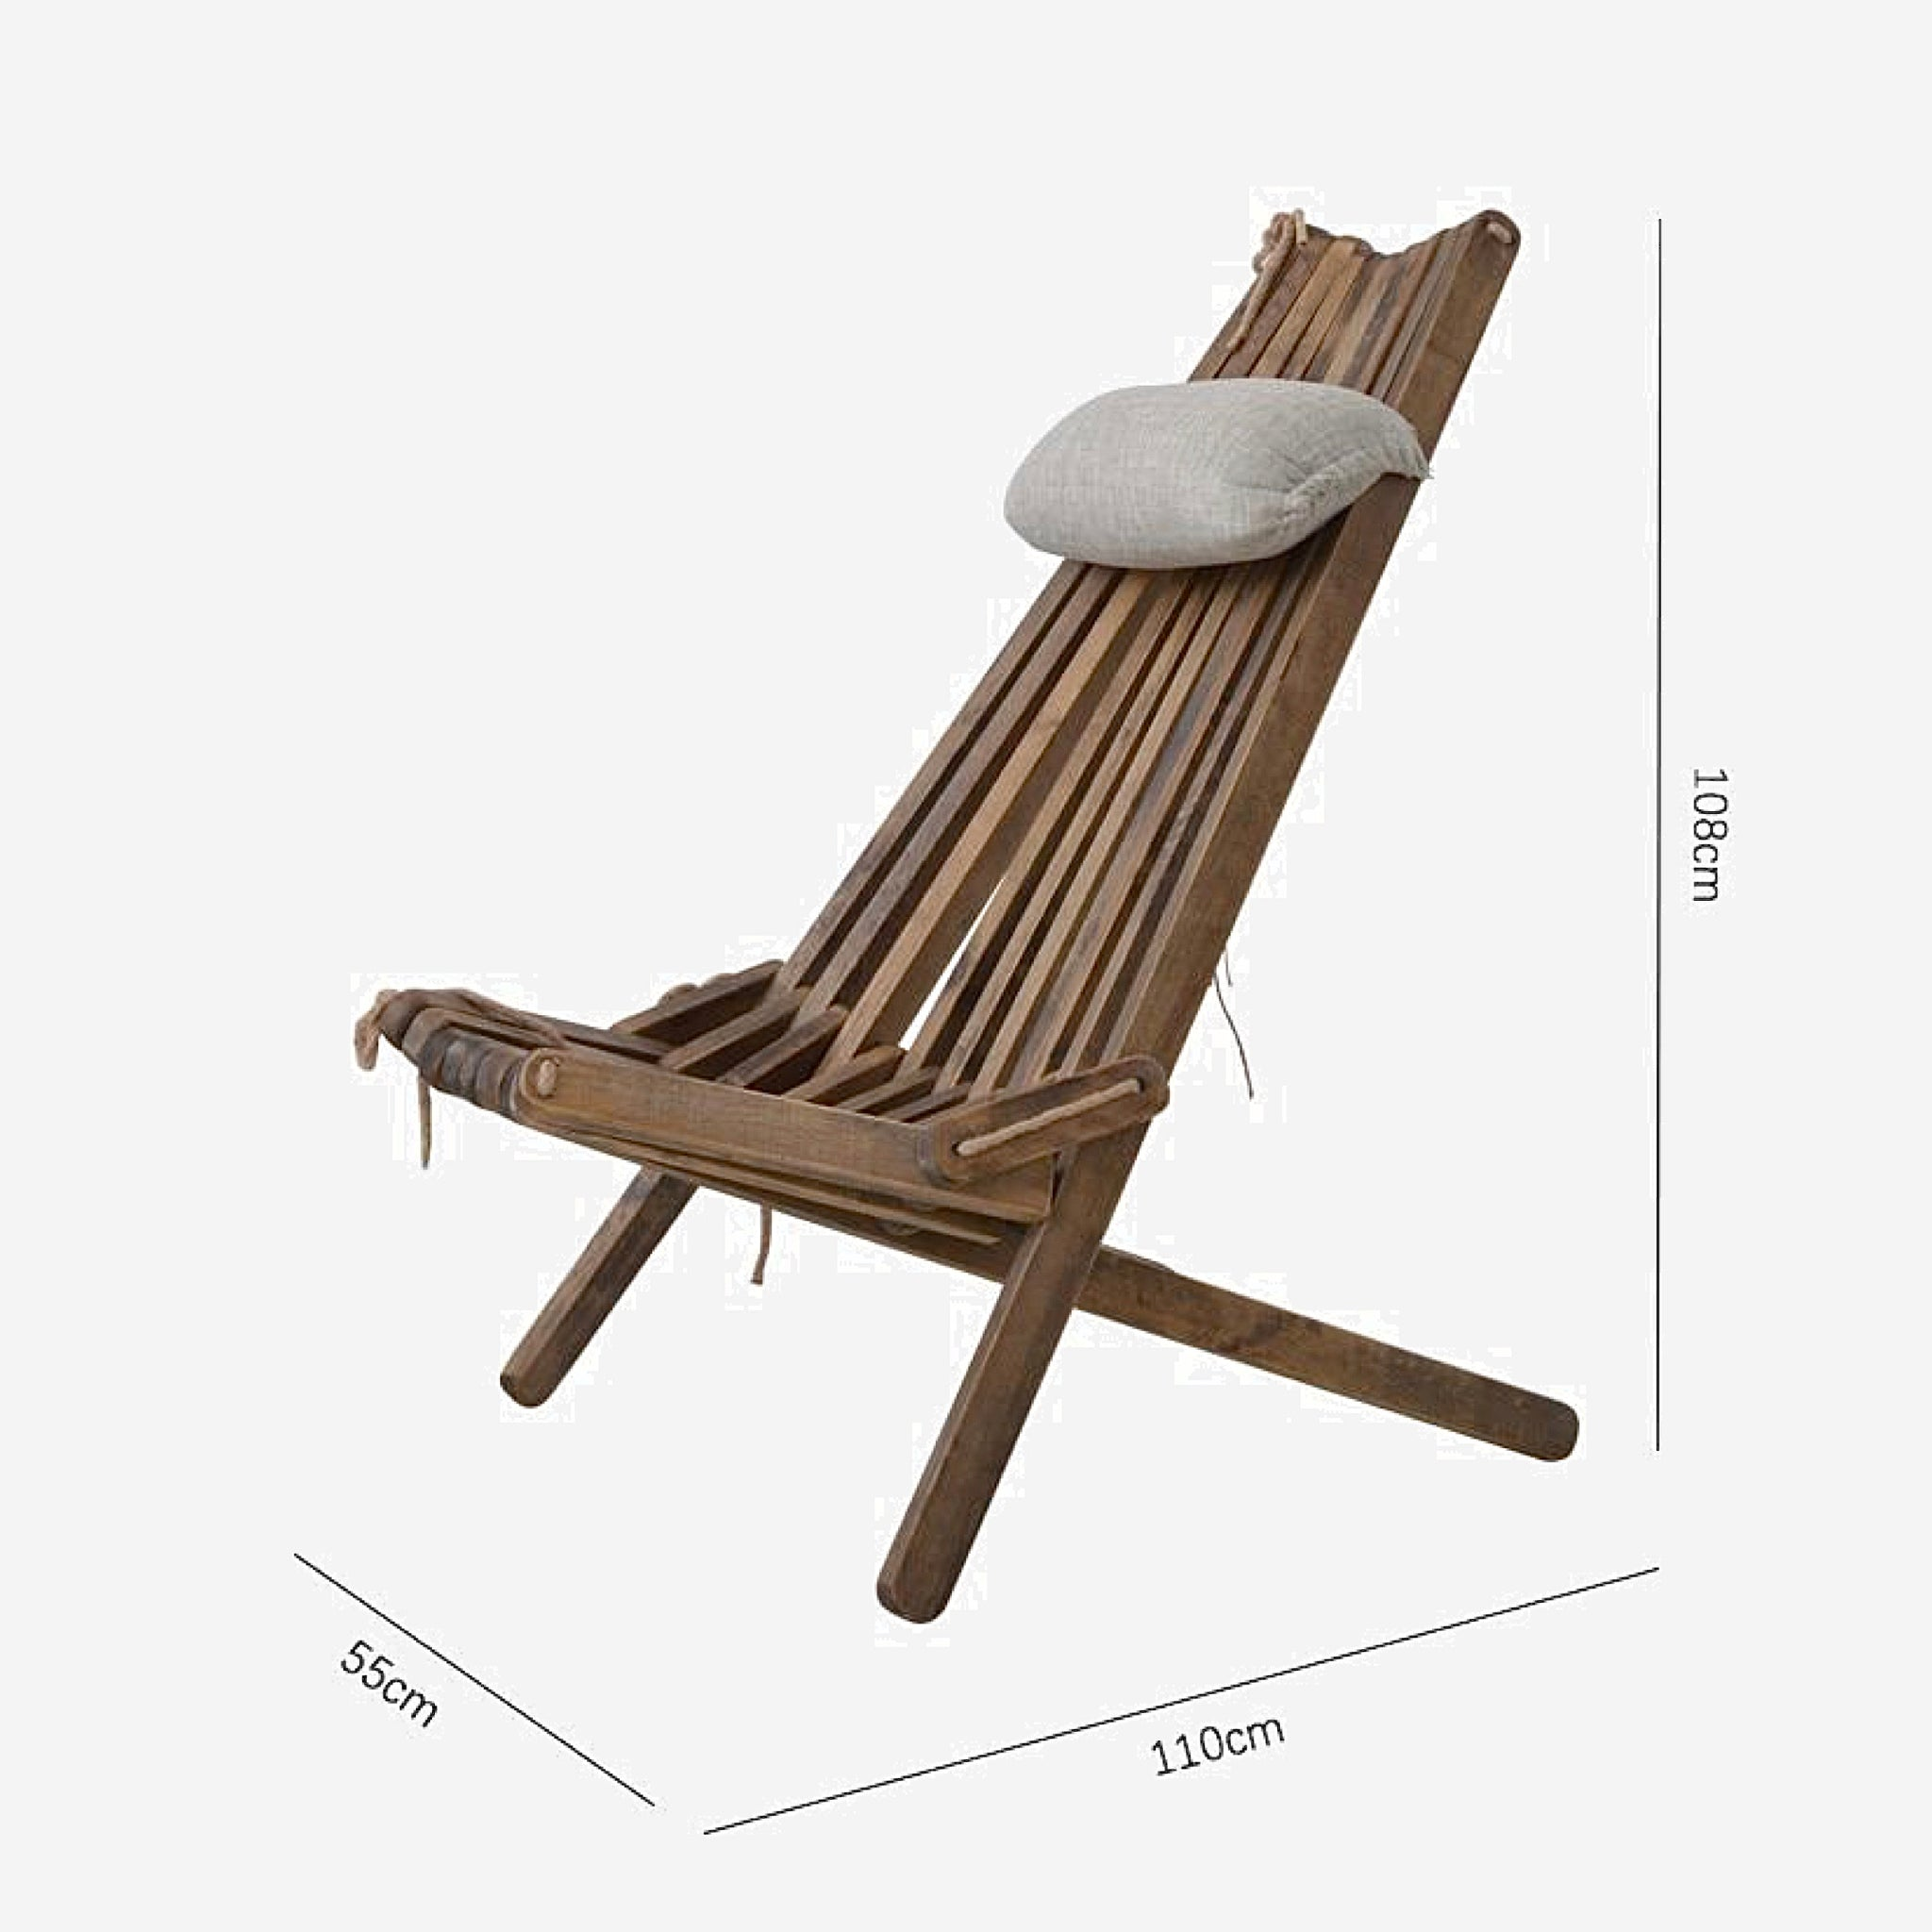 Wooden Lounge Chair with Pillow and Seat Cushion Foldable Outdoor Wood Folding Patio Balcony Outdoors Furniture Size Chart